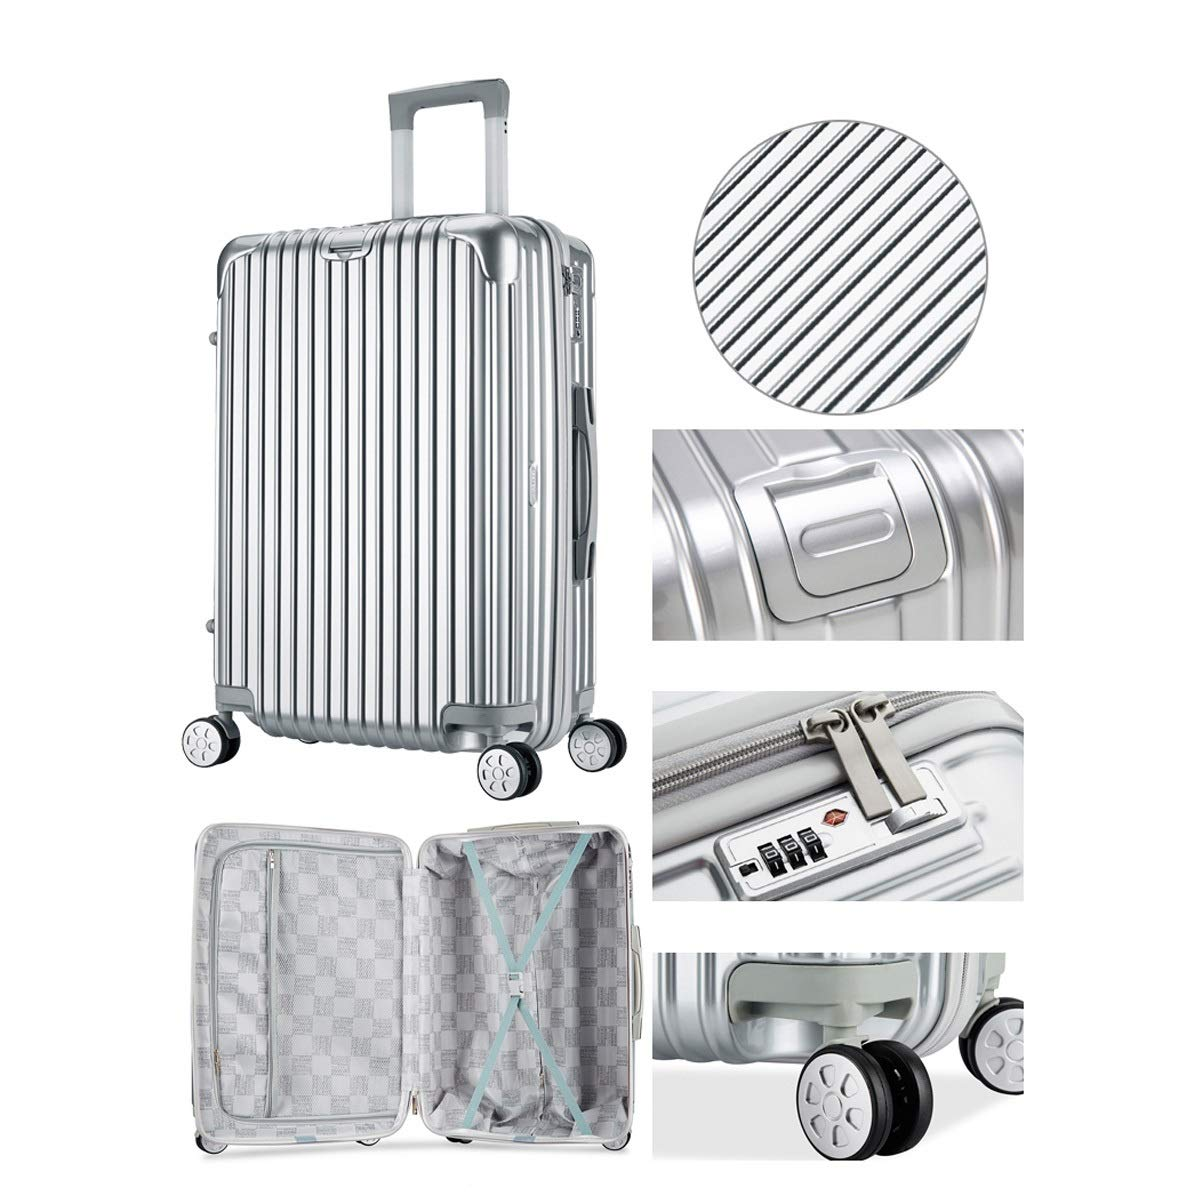 Best Gift Travel Organizer Bahaowenjuguan Hard-Spinning Suitcase 20//22//24 inch Trolley case Carrying Luggage Silver Color : Brown, Size : 26